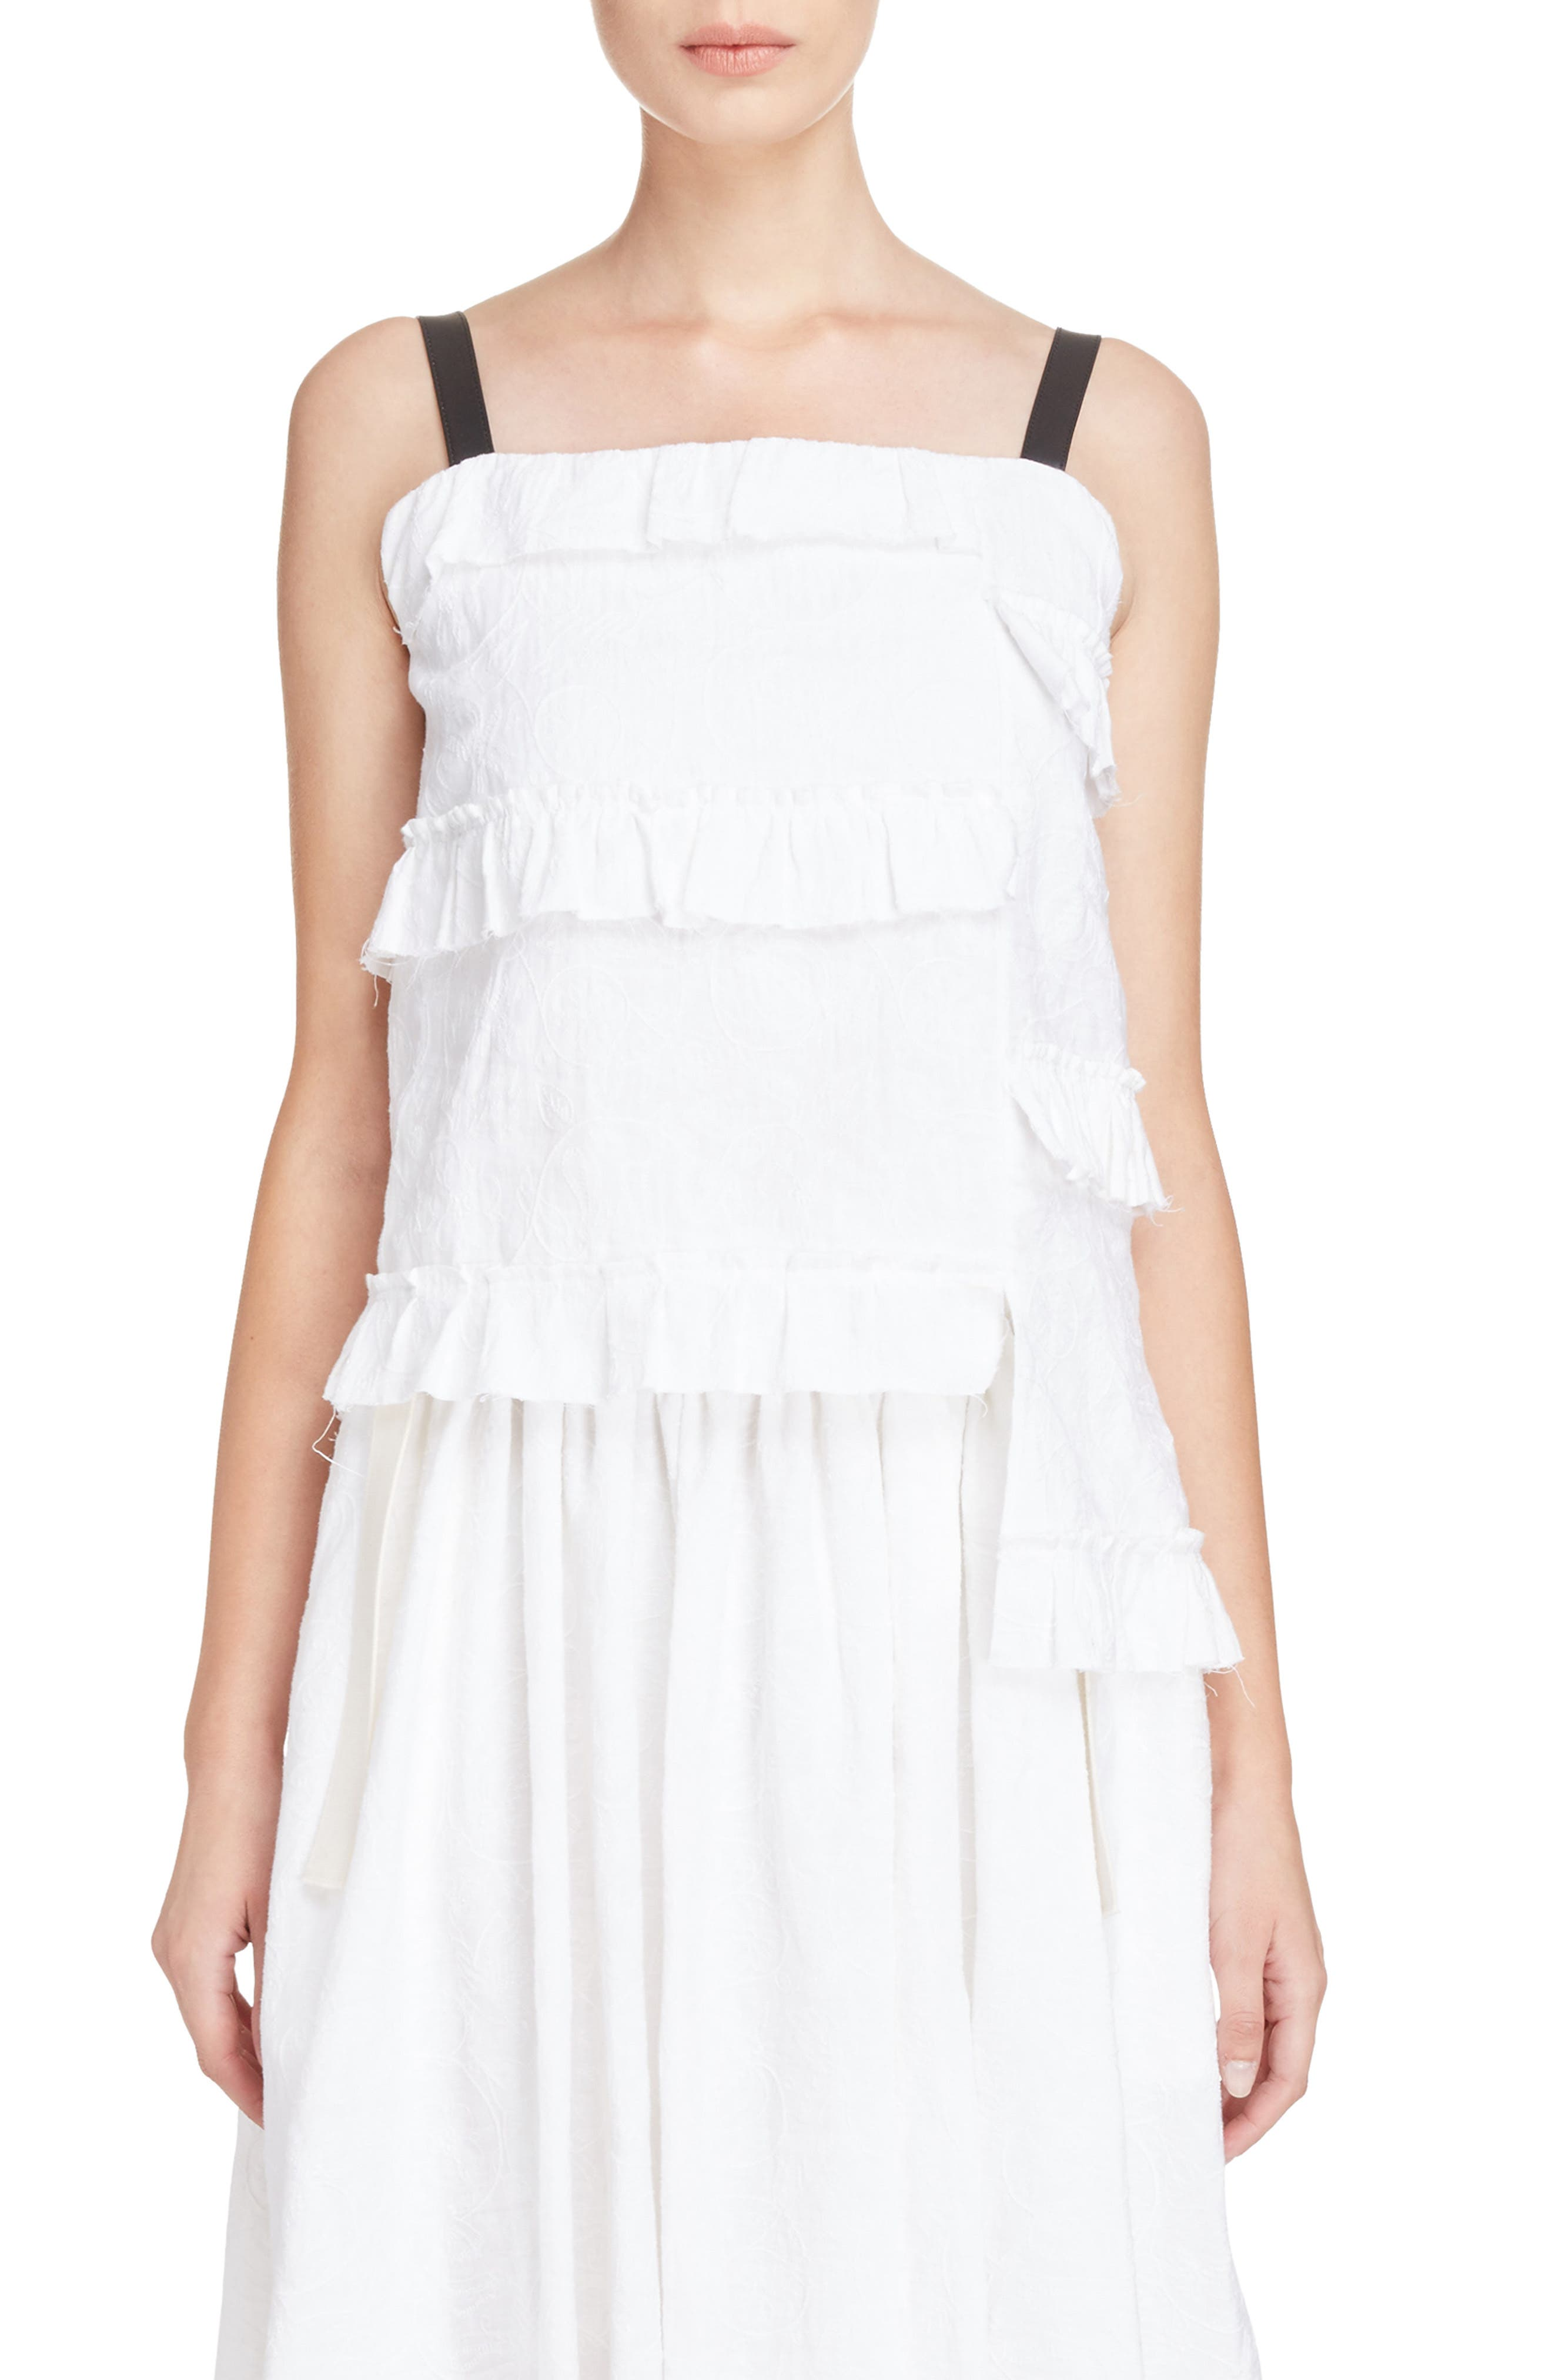 Broderie Anglaise Ruffle Camisole,                             Main thumbnail 1, color,                             100